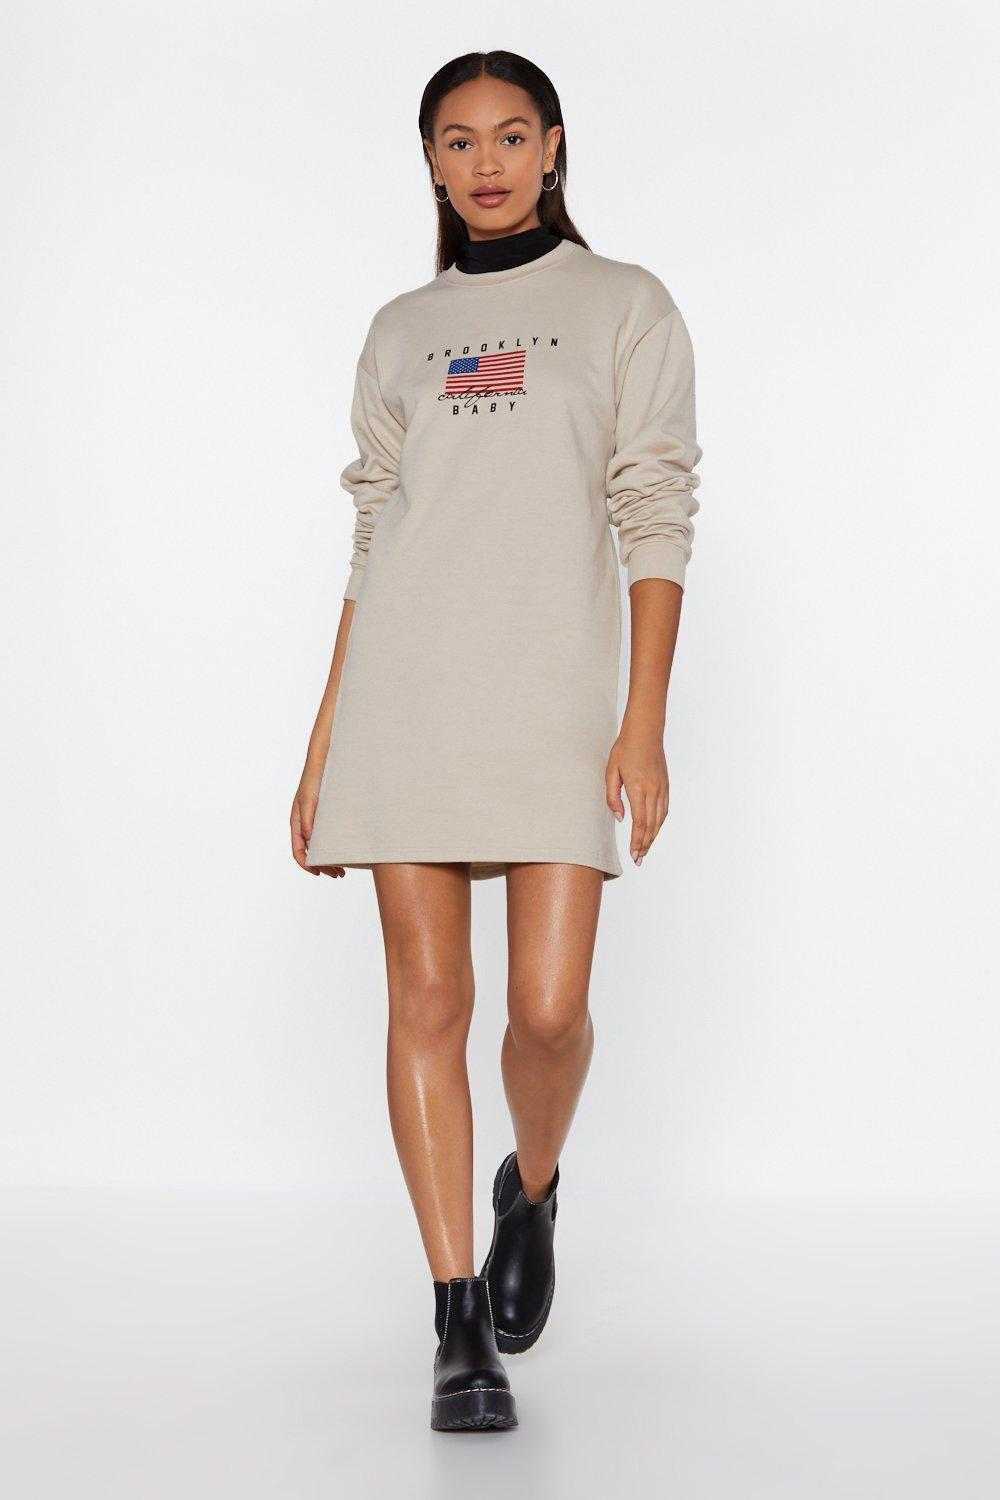 Brooklyn Baby Sweatshirt Dress by Nasty Gal